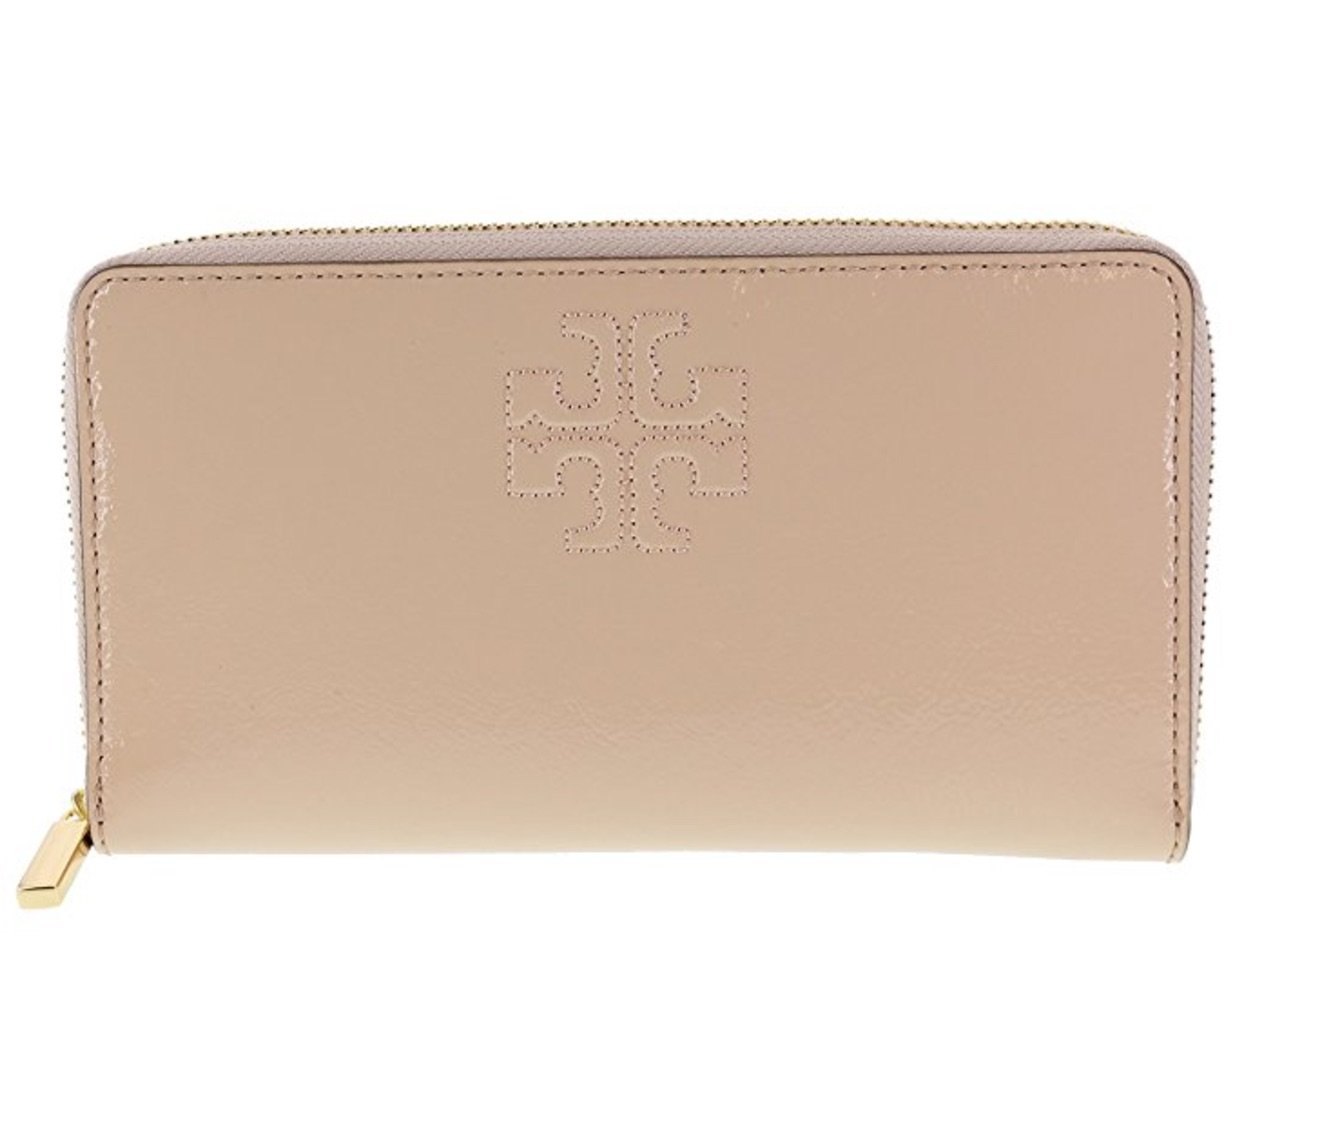 Tory Burch Charlie Patent Leather Zip Continental Wallet, Style No. 34048 (Light Oak)